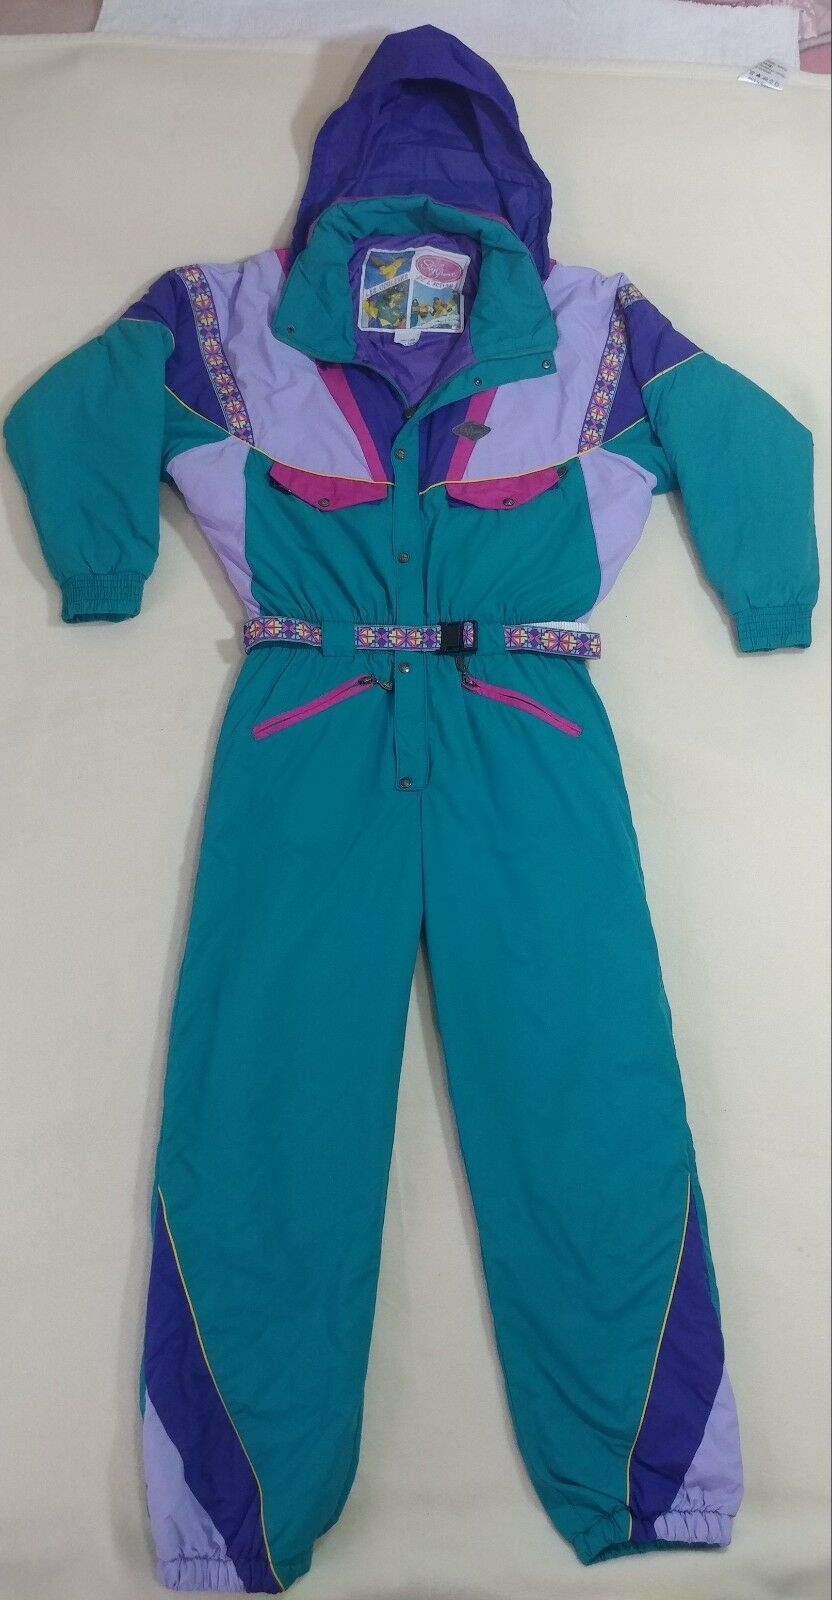 Vintage 90's Style France Ski Suit Rare Grün Snow Suit Nice Größe 39 Us 50 F Top